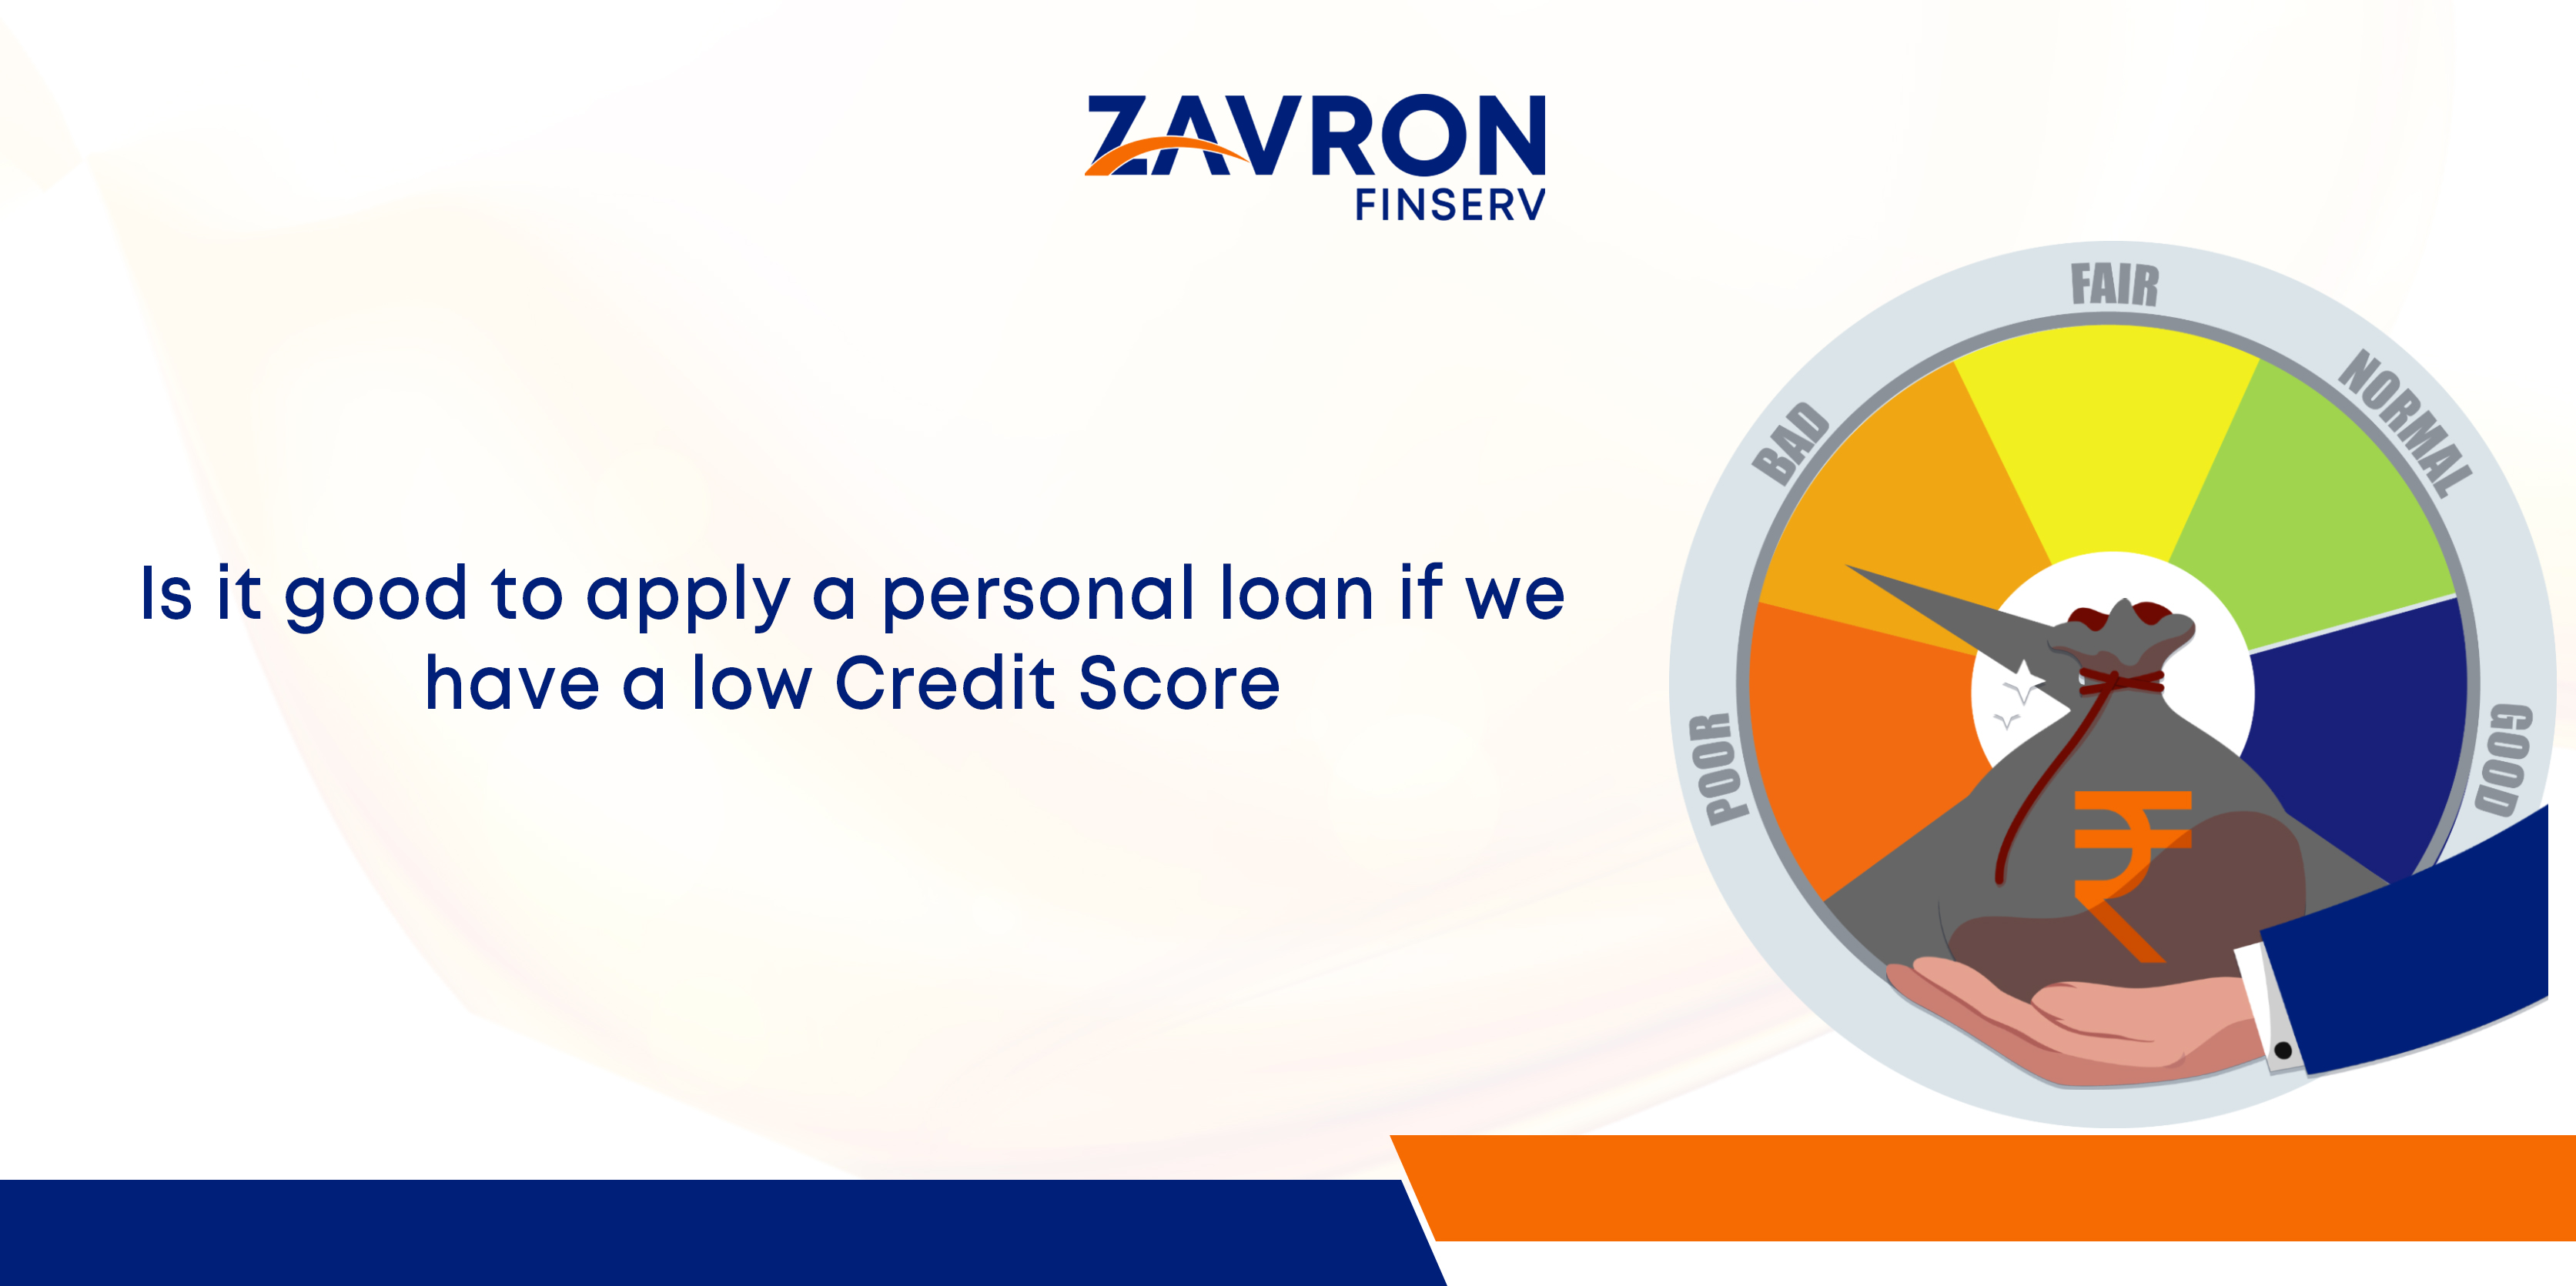 Is it good to apply for a personal loan if we have a low Credit Score